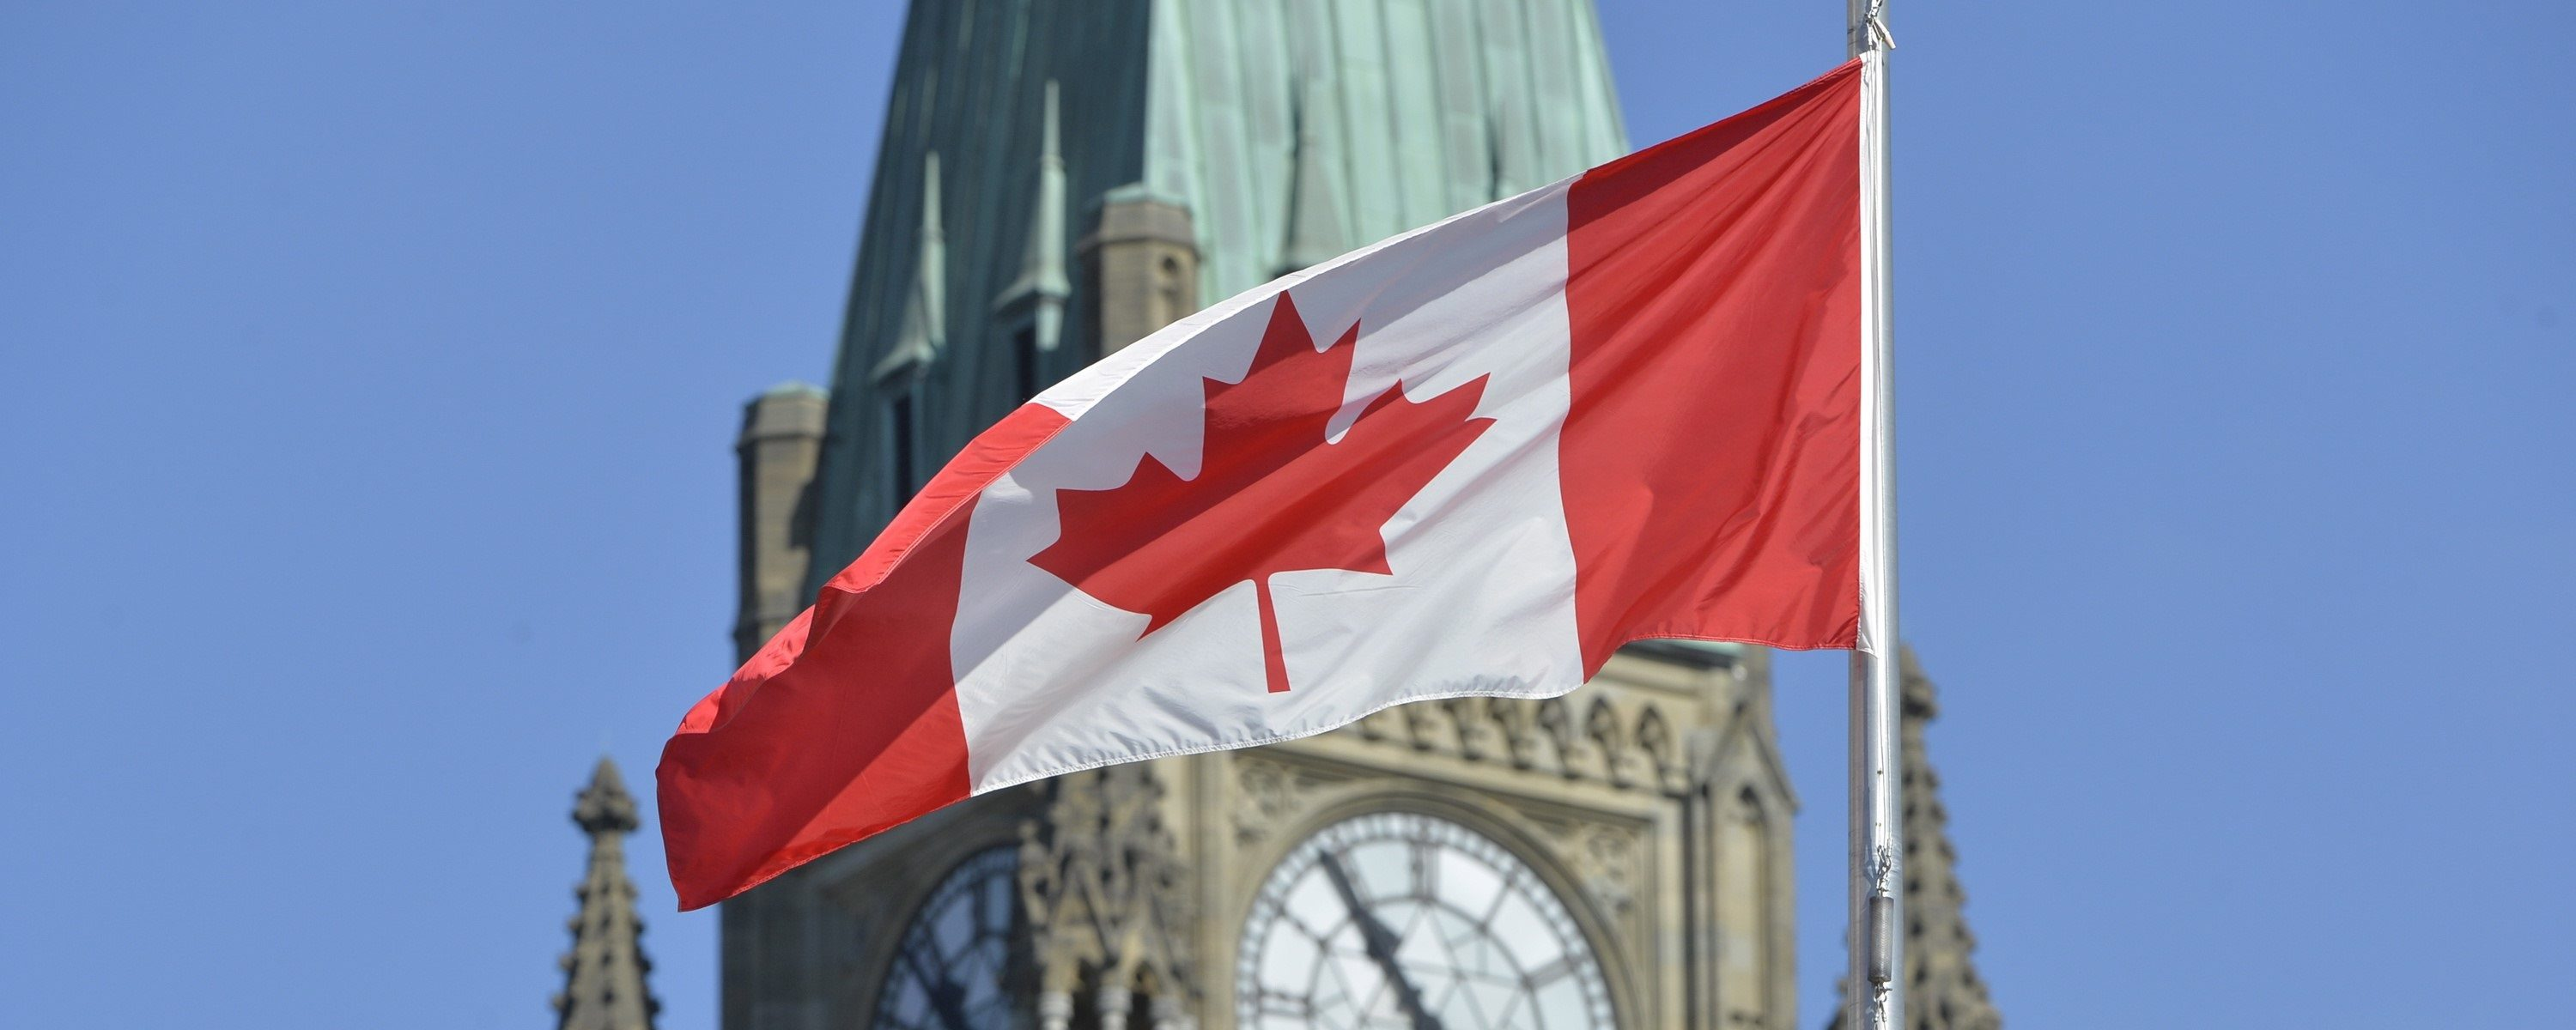 Canadian Flag and parliament